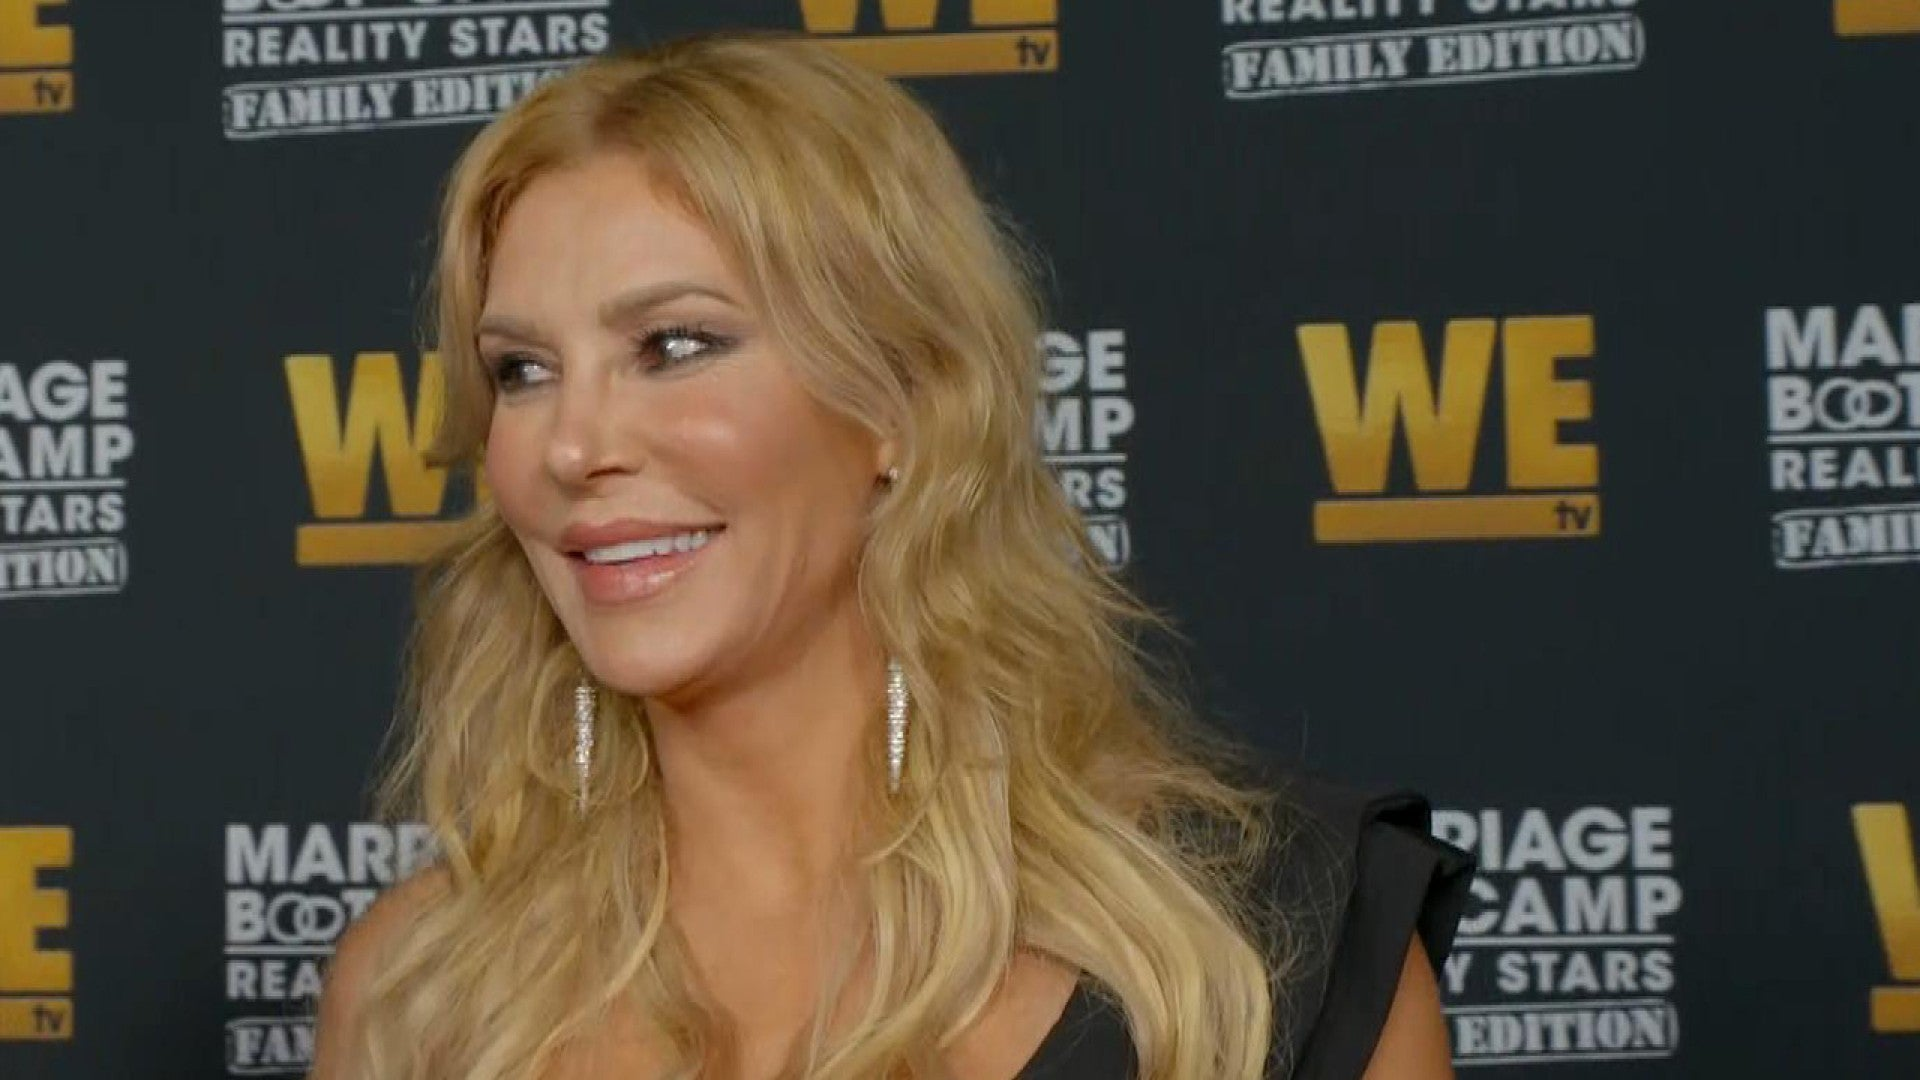 Brandi Glanville Sounds Off On New Rhobh Cast And Whether